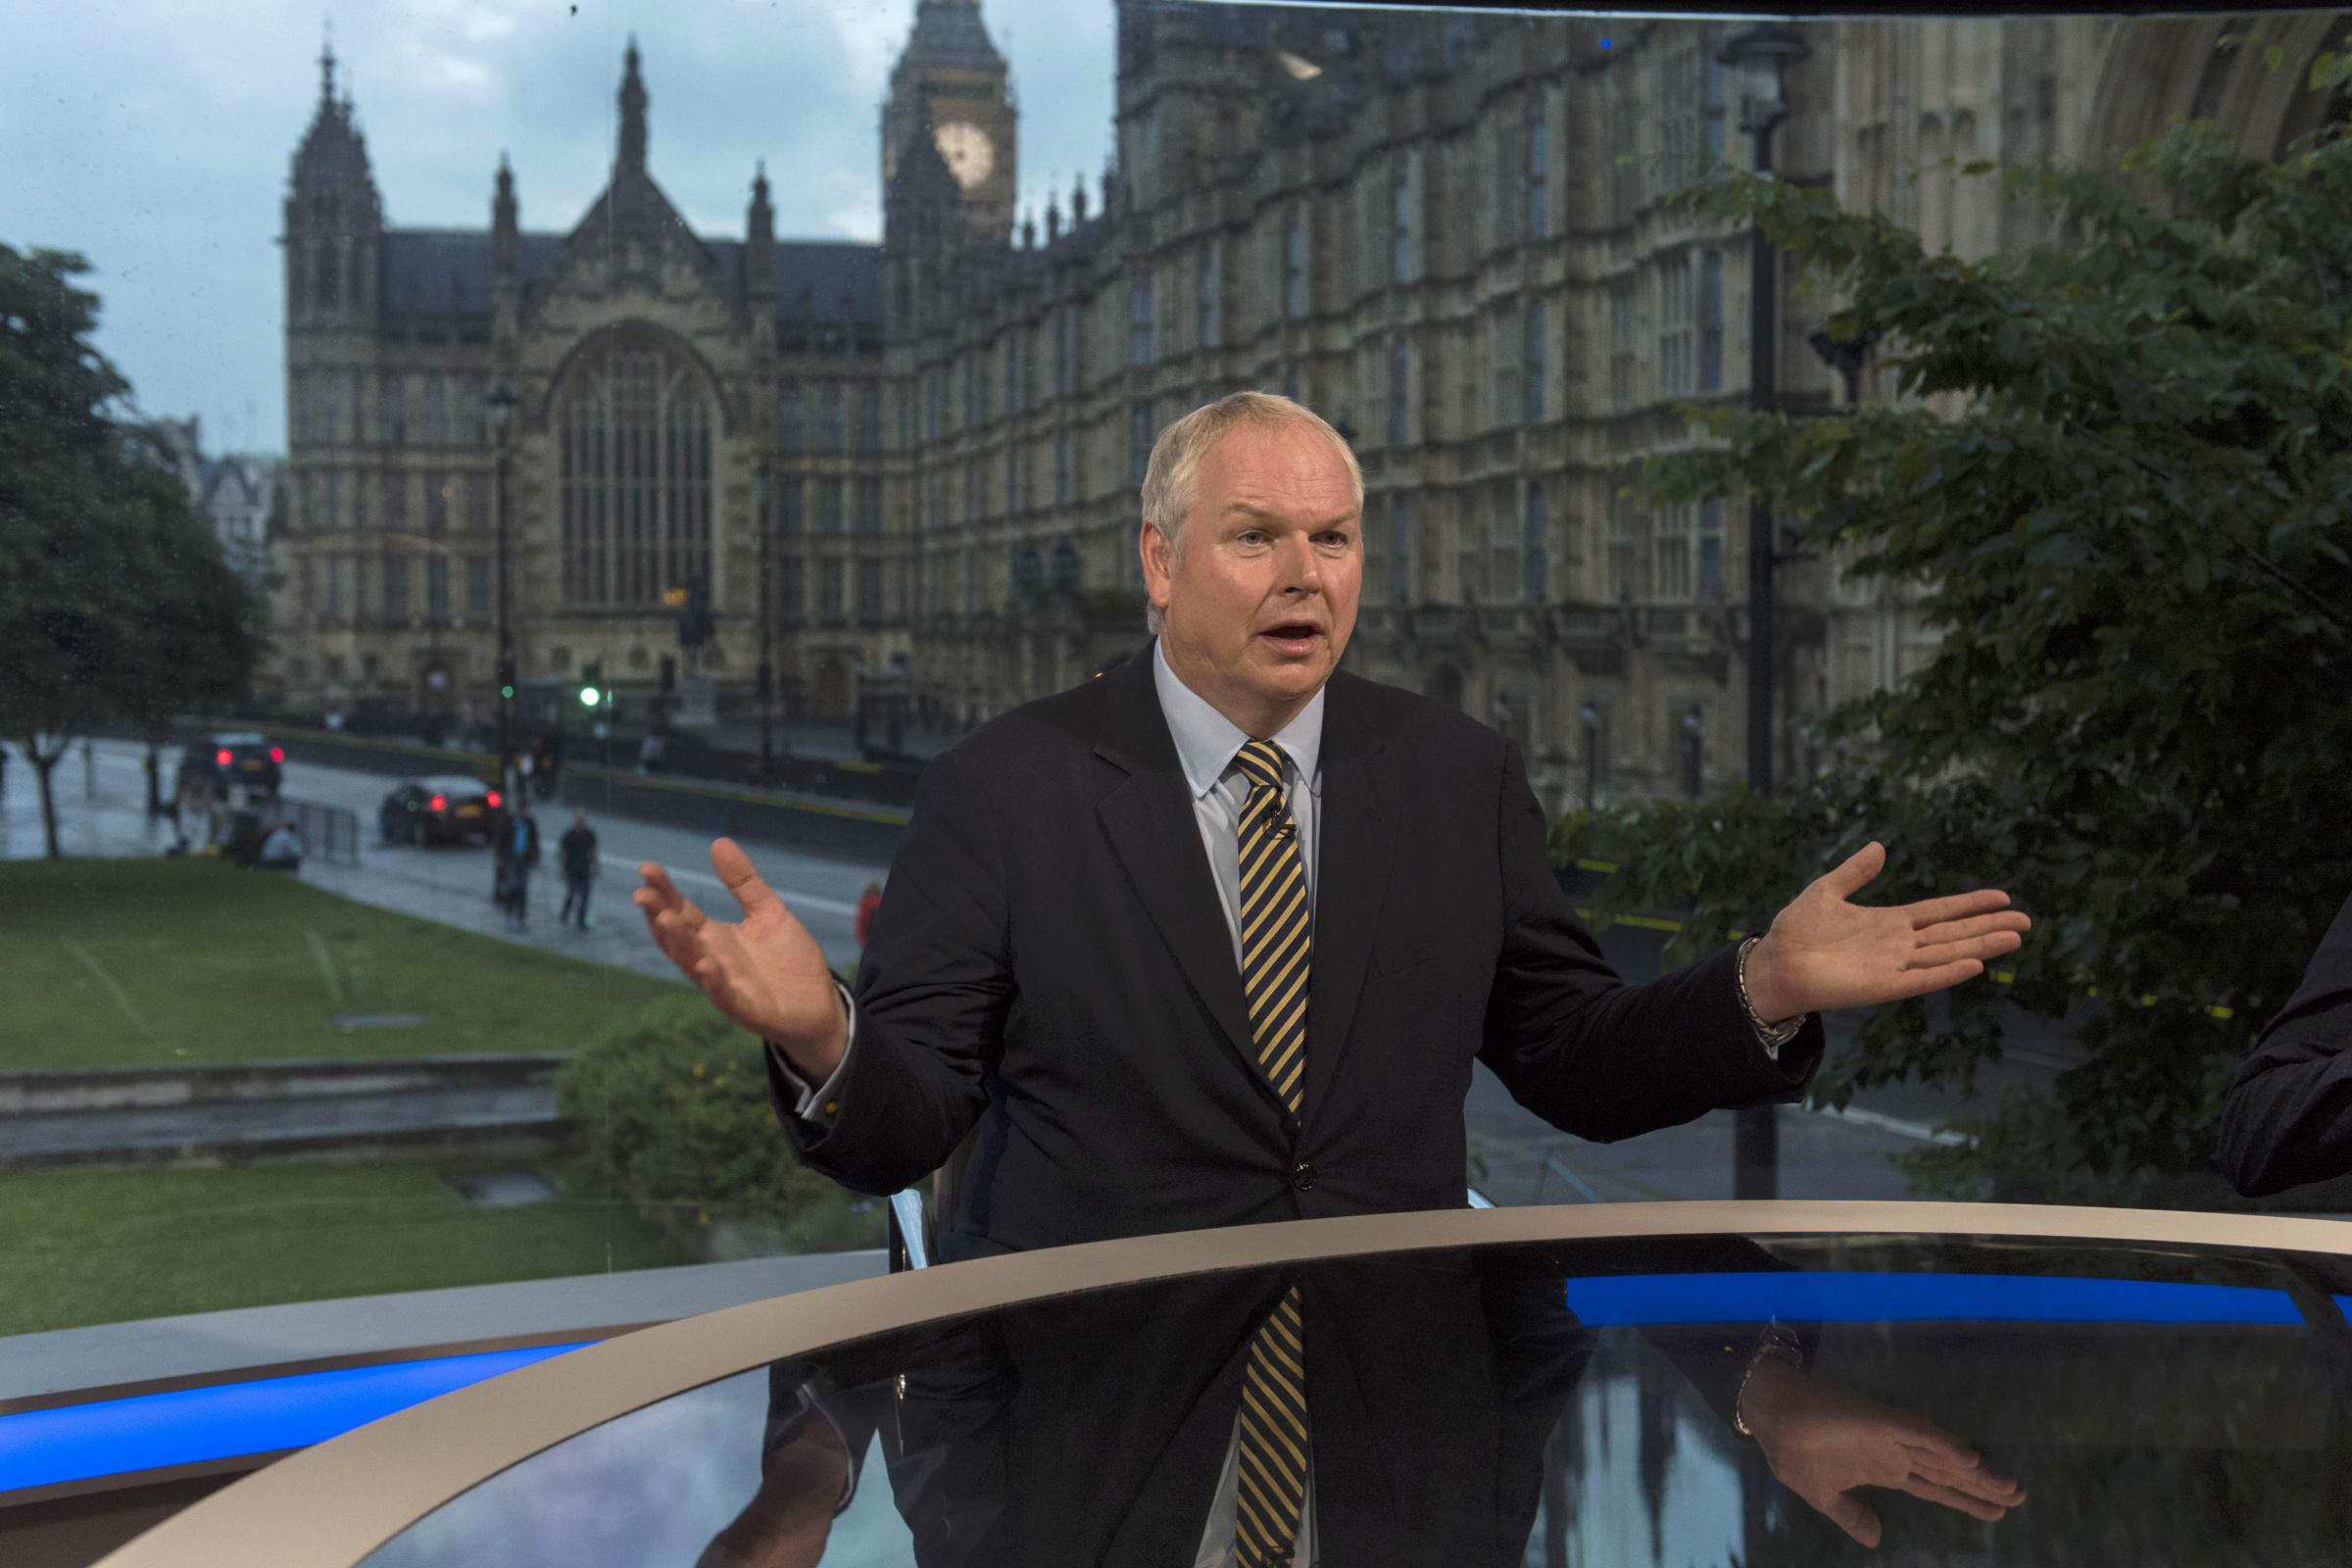 Sky News presenter Adam Boulton's clarification left a bit to be desired